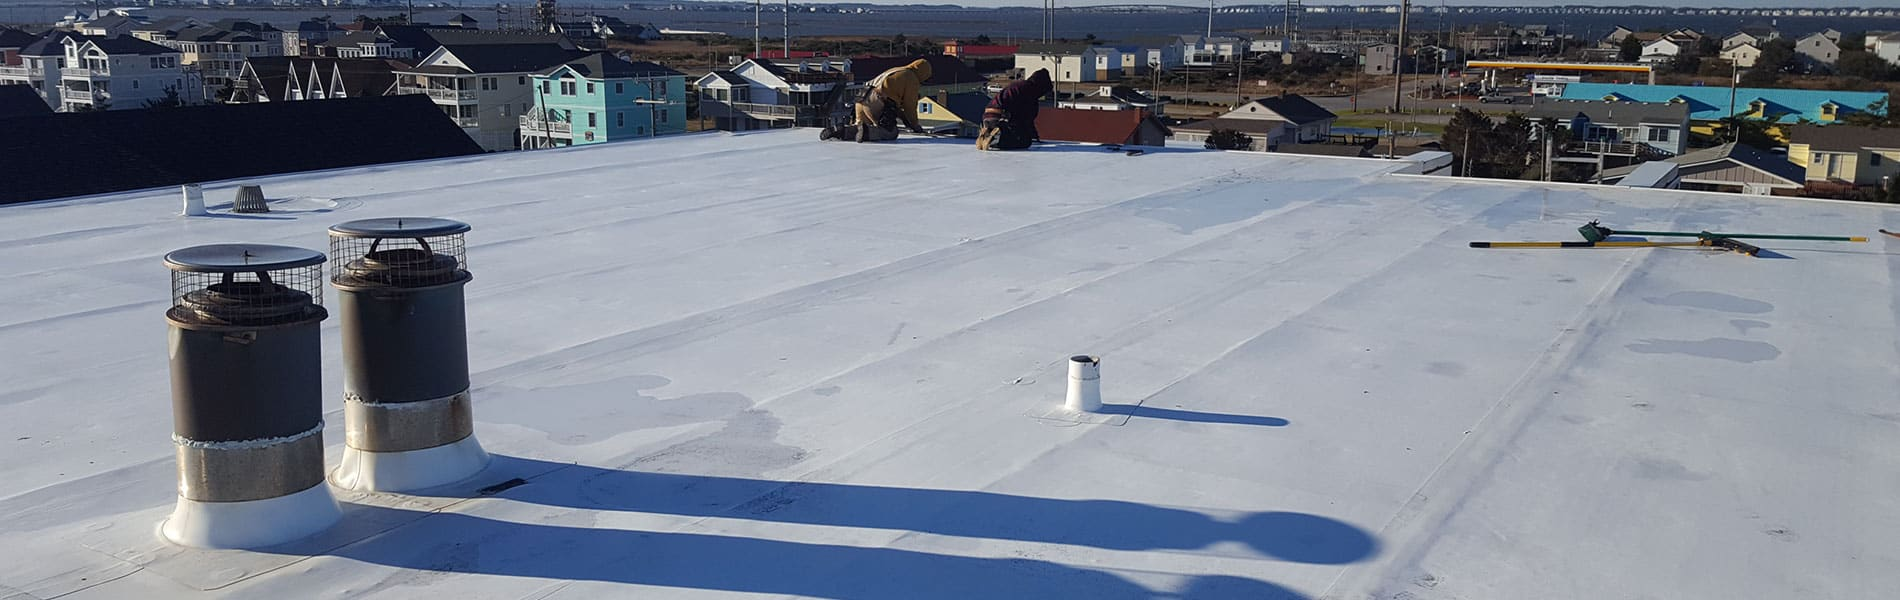 Outer Banks Low Slope Flat Roof System   Gallop Roofing & Remodeling, Inc.